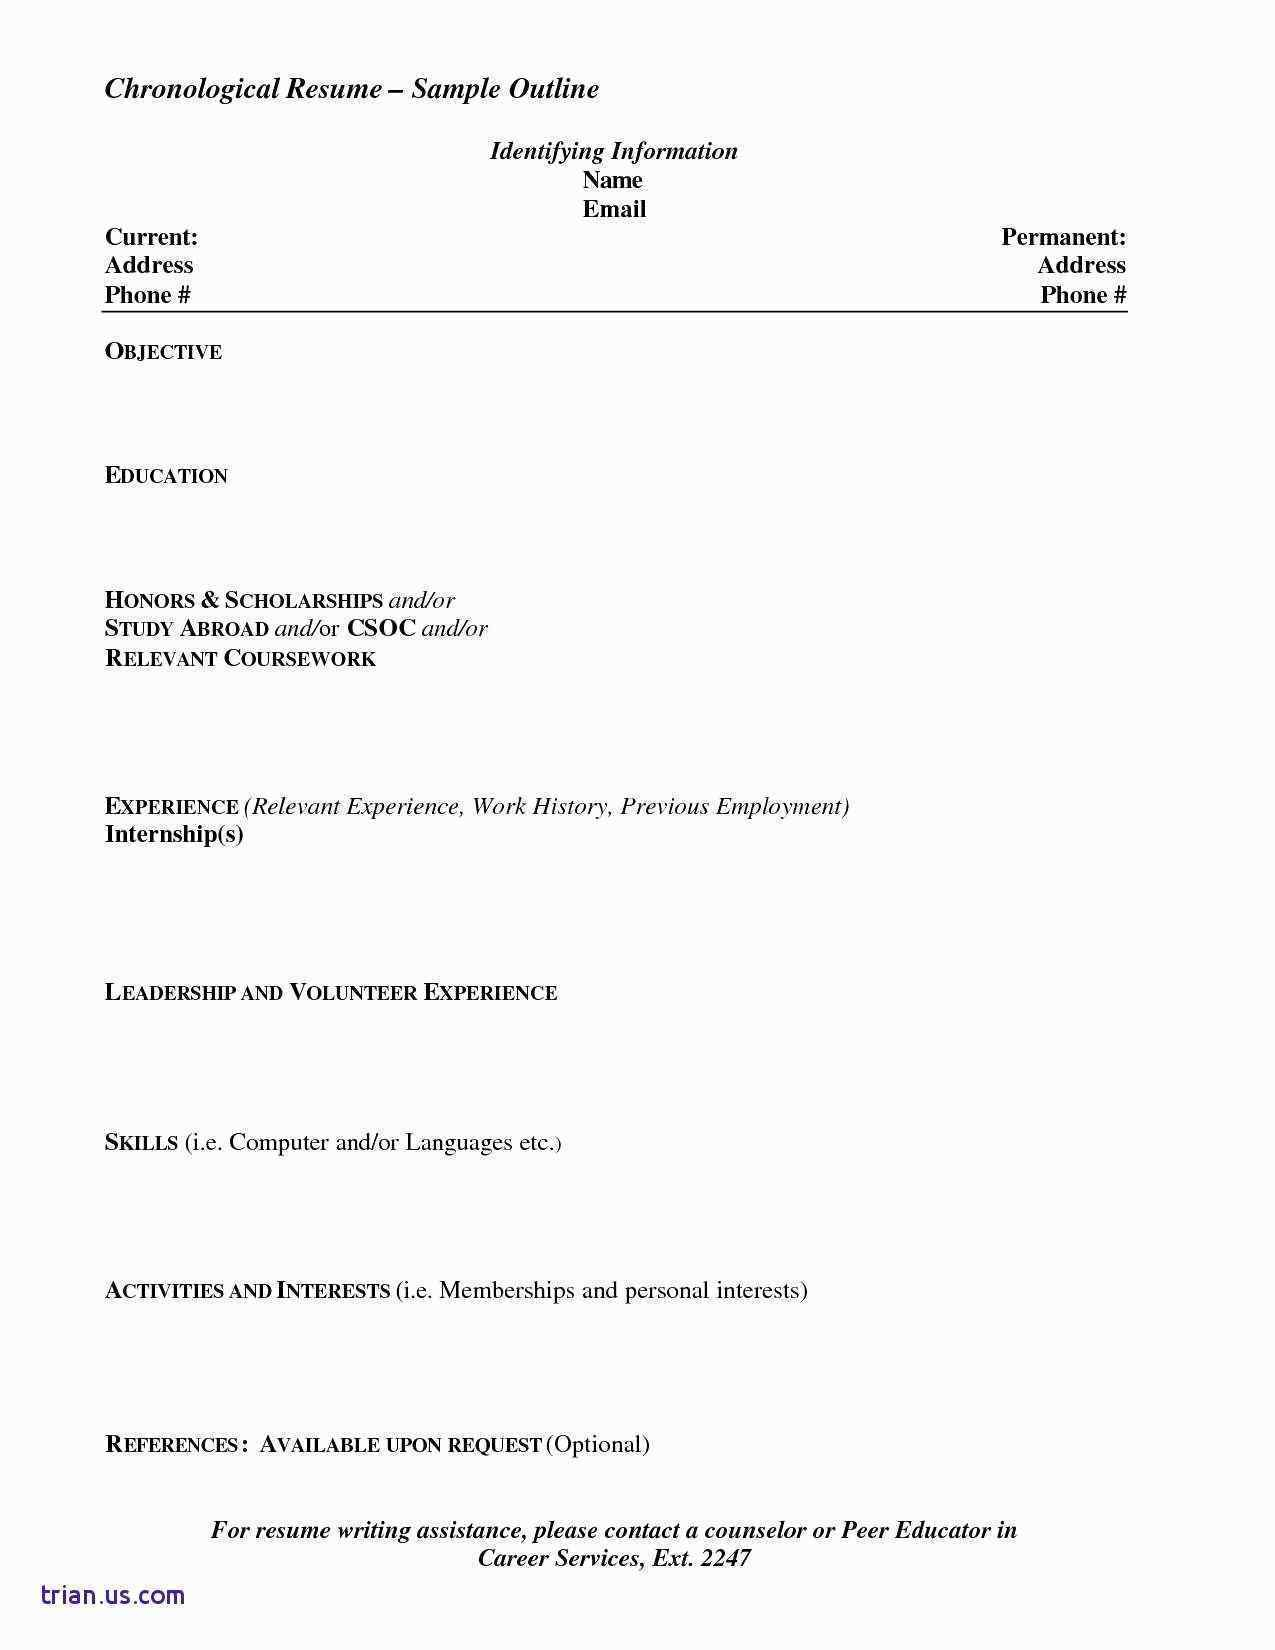 Electrical Engineering Resume Entry Level - Entry Level Electrical Engineering Cover Letter Unique 38 Beautiful